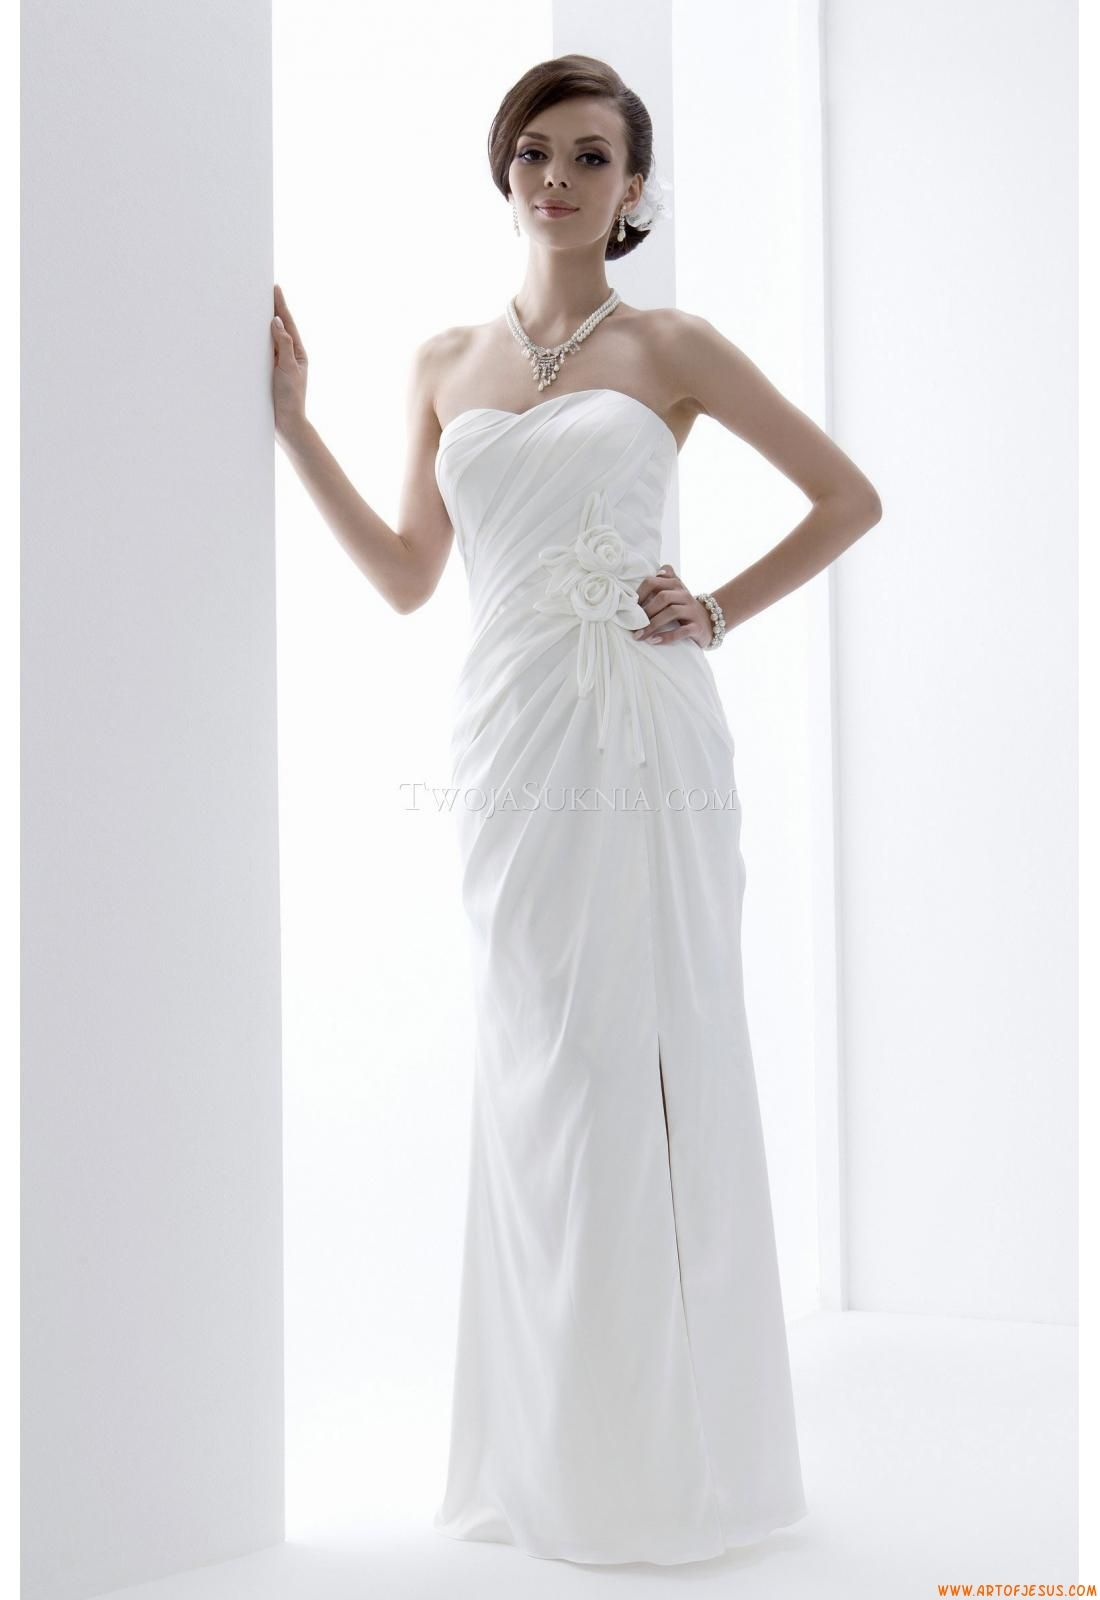 Wedding Dress Venus VN6779 Venus Informal 2013 | wedding dresses ...